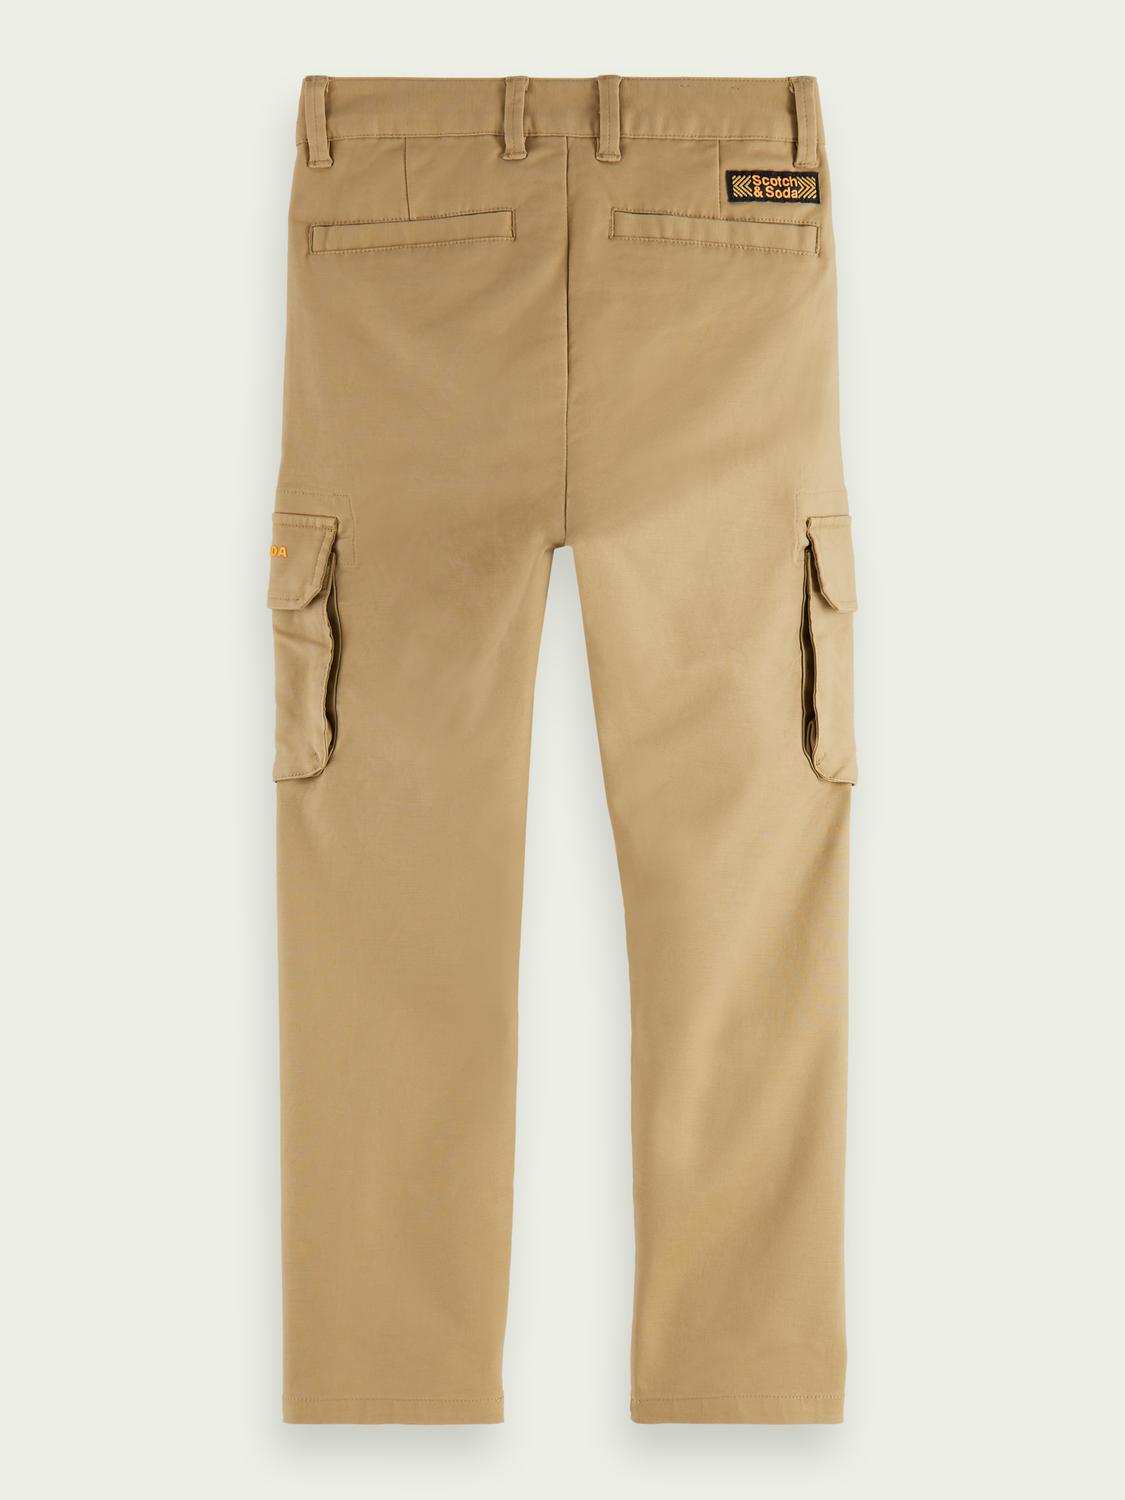 Jongens Clean cargobroek | Loose tapered fit